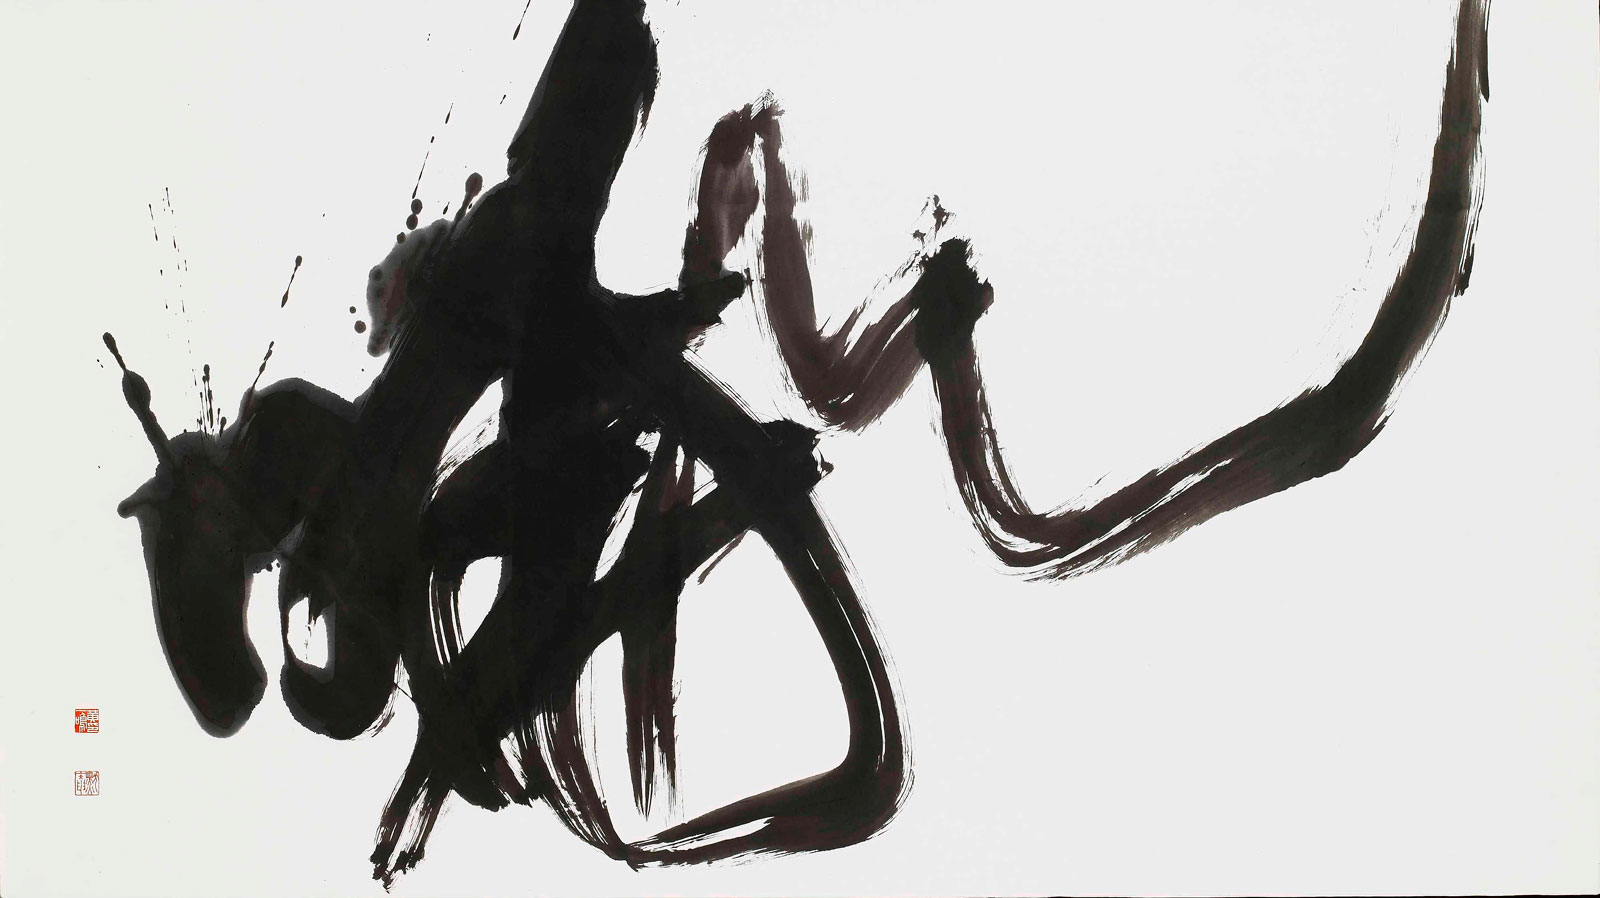 2009, cursive script, ink on xuan paper, 24.75 x 35.5 inches